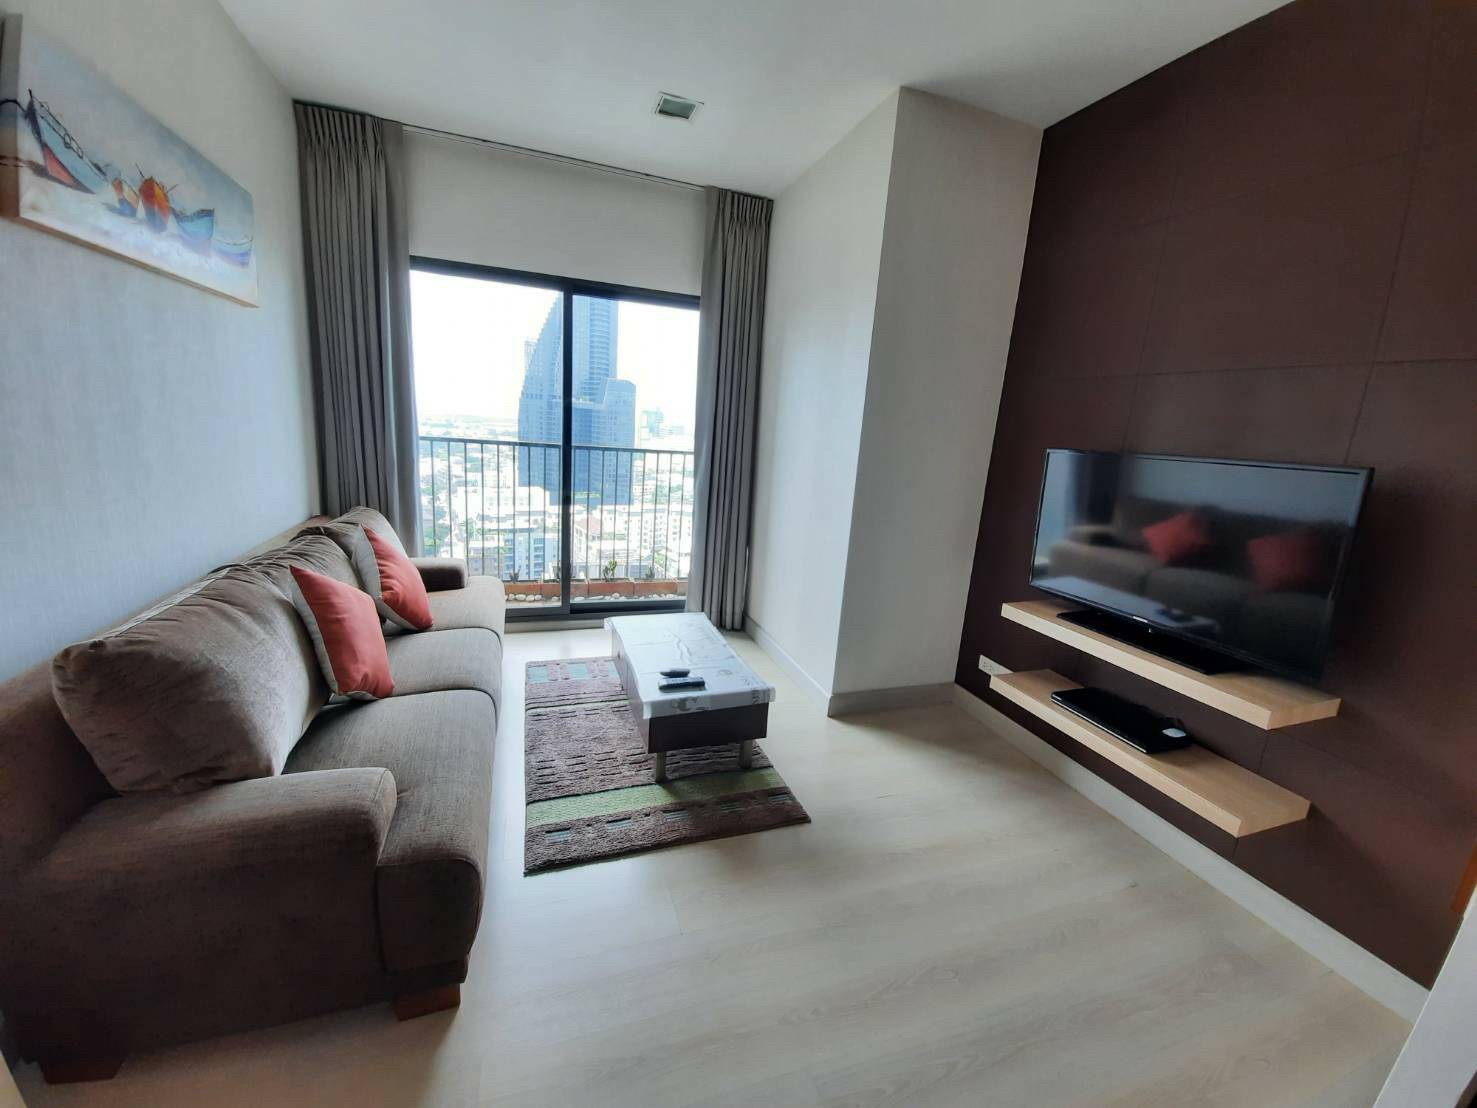 LTH3841 – Noble Remix FOR RENT 1 bed 1 bath size 45 Sq.M. Nearby BTS Thonglor station ONLY 20k/Month